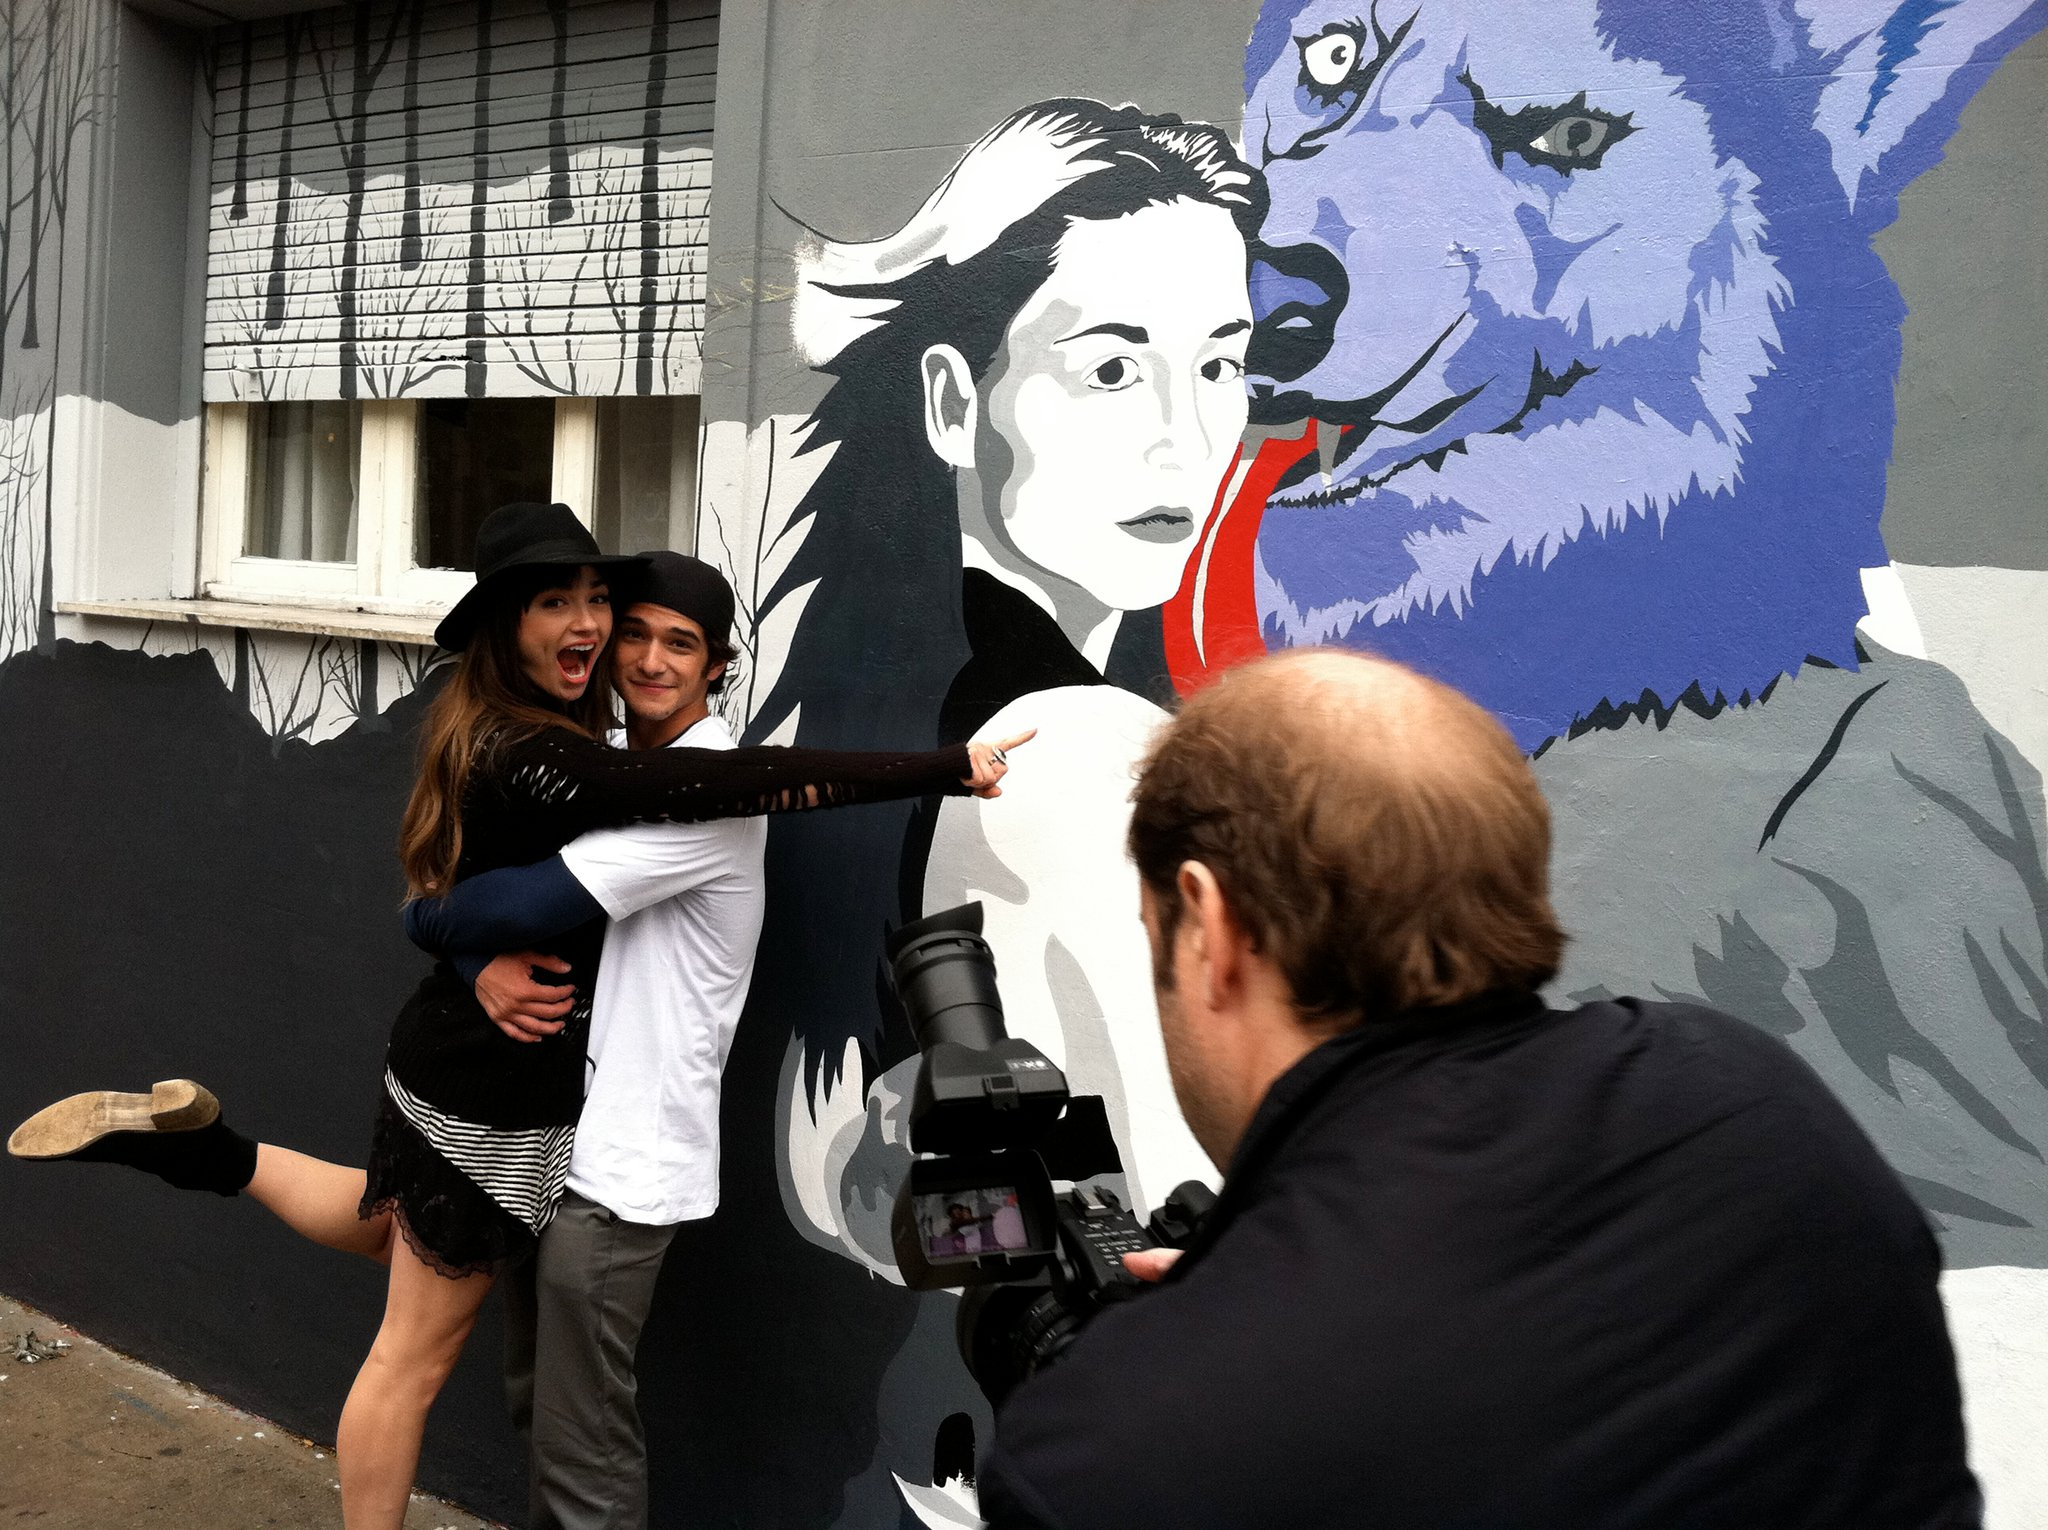 Tyler Posey Crystal Reed Images Promoting Teen Wolf In Argentina